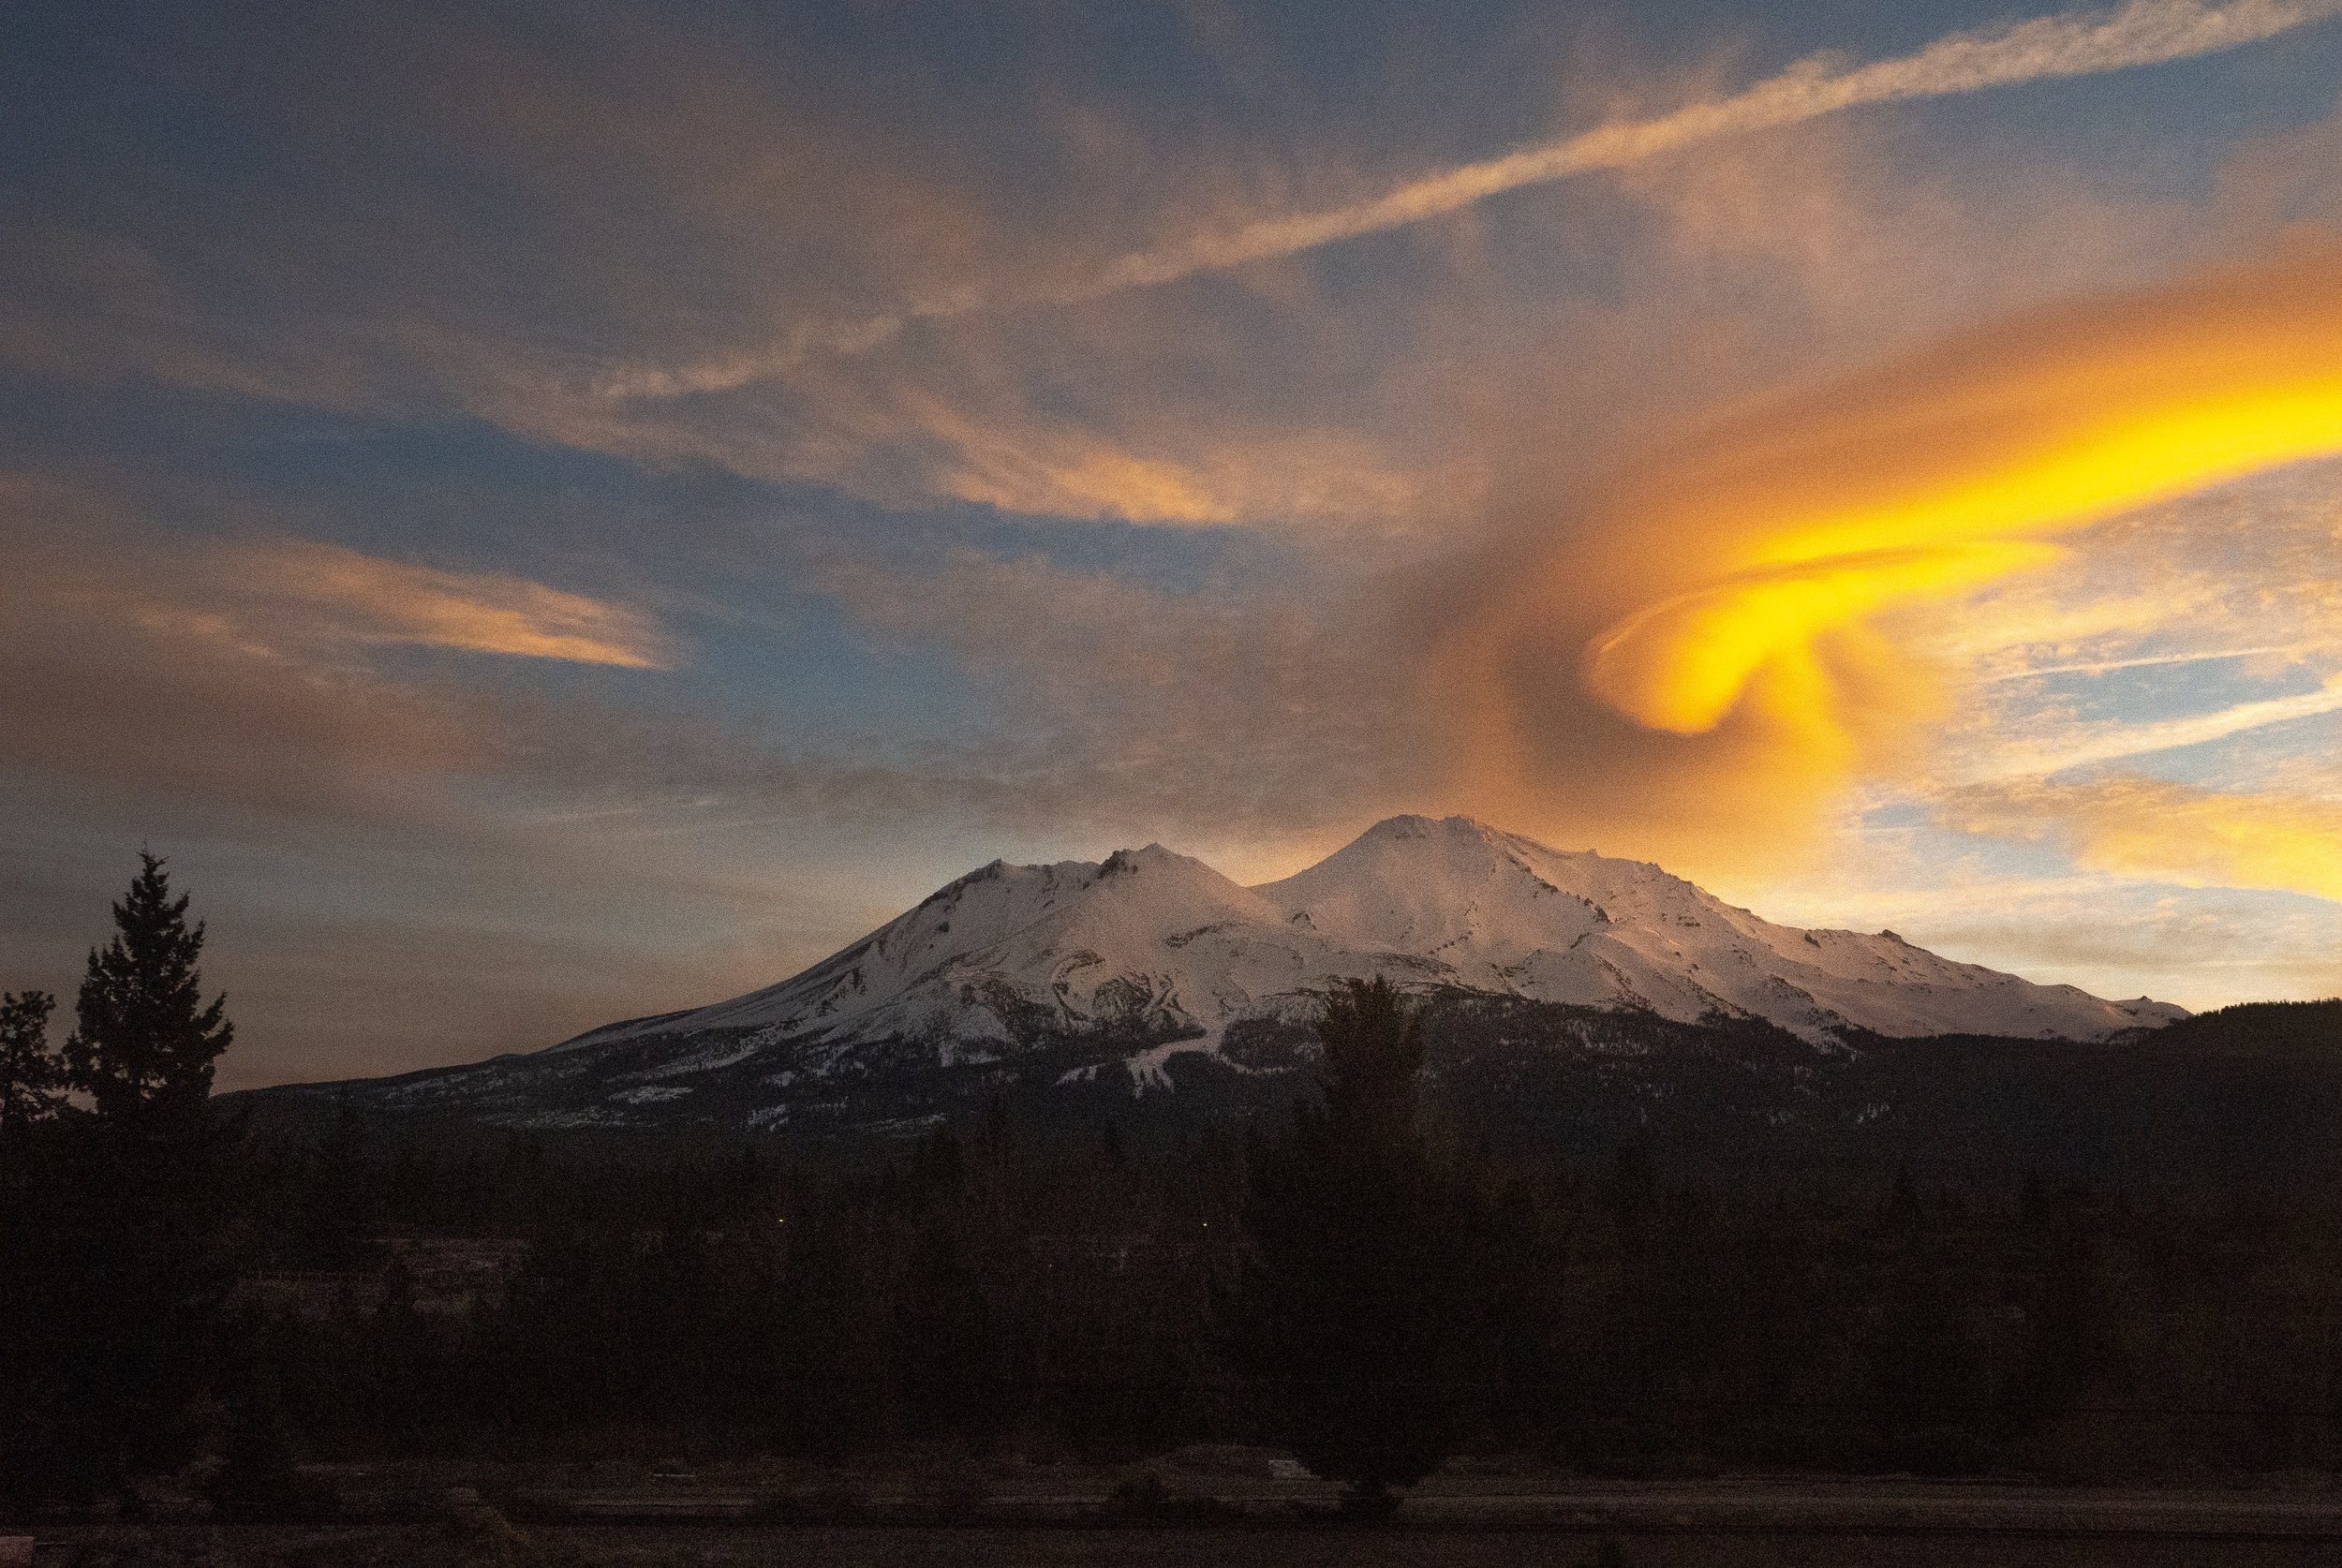 I know I showed shots of this in an earlier dispatch about my train up to Portland, but I can't help it, I have never before seen anything like this cloud formation over Shasta that morning at sunrise.